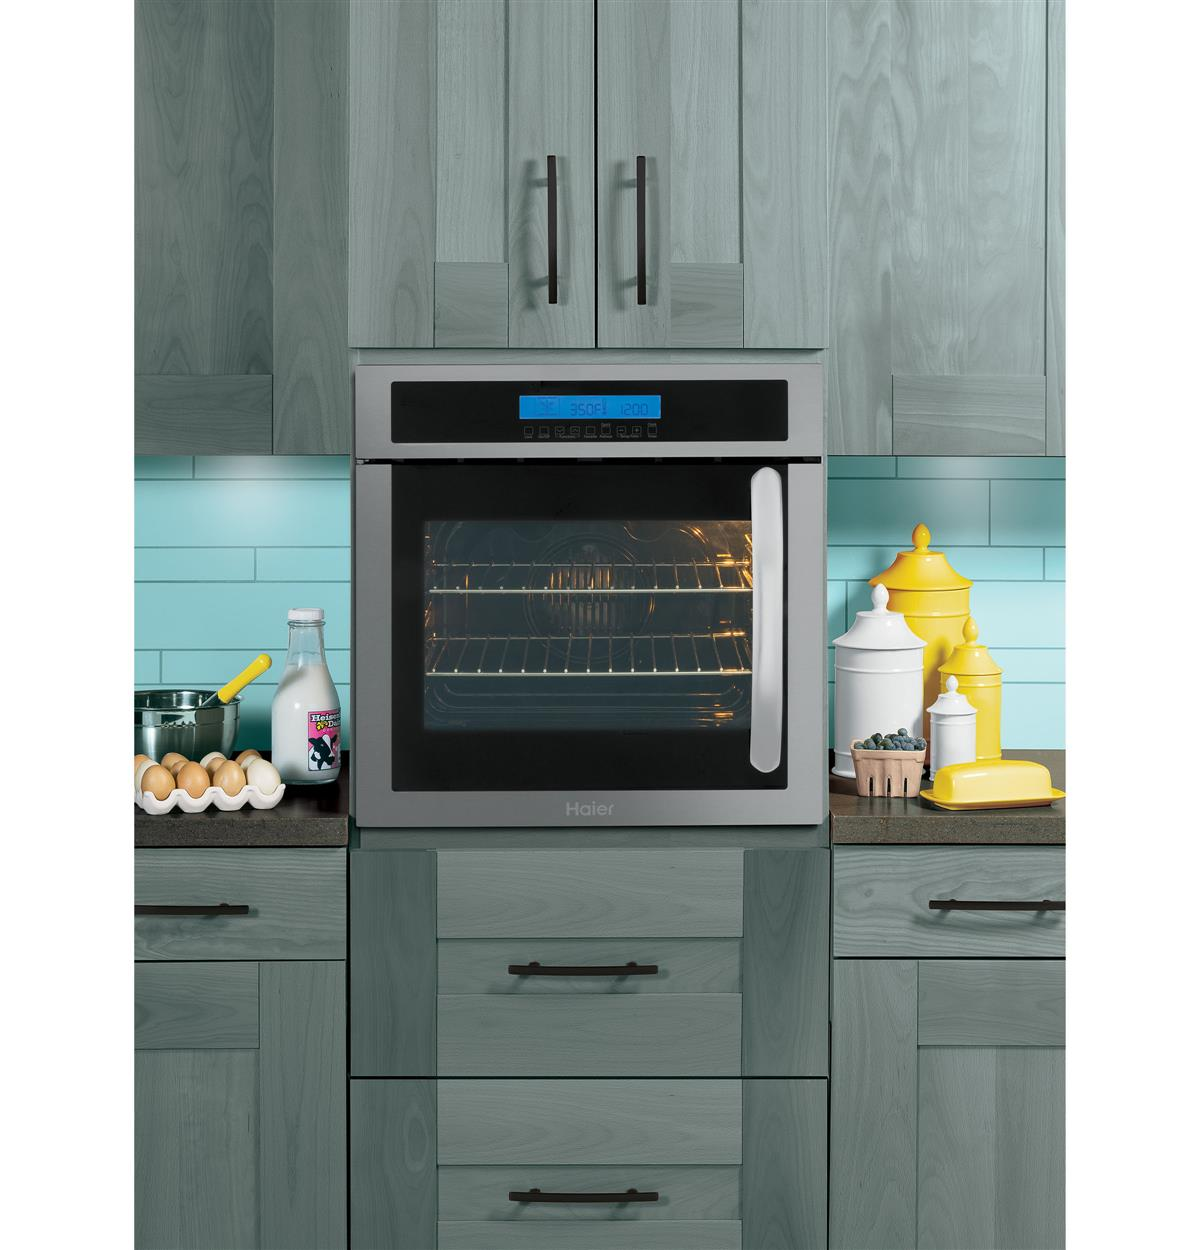 Stainless Built-In Ovens HCW225LAES Installed